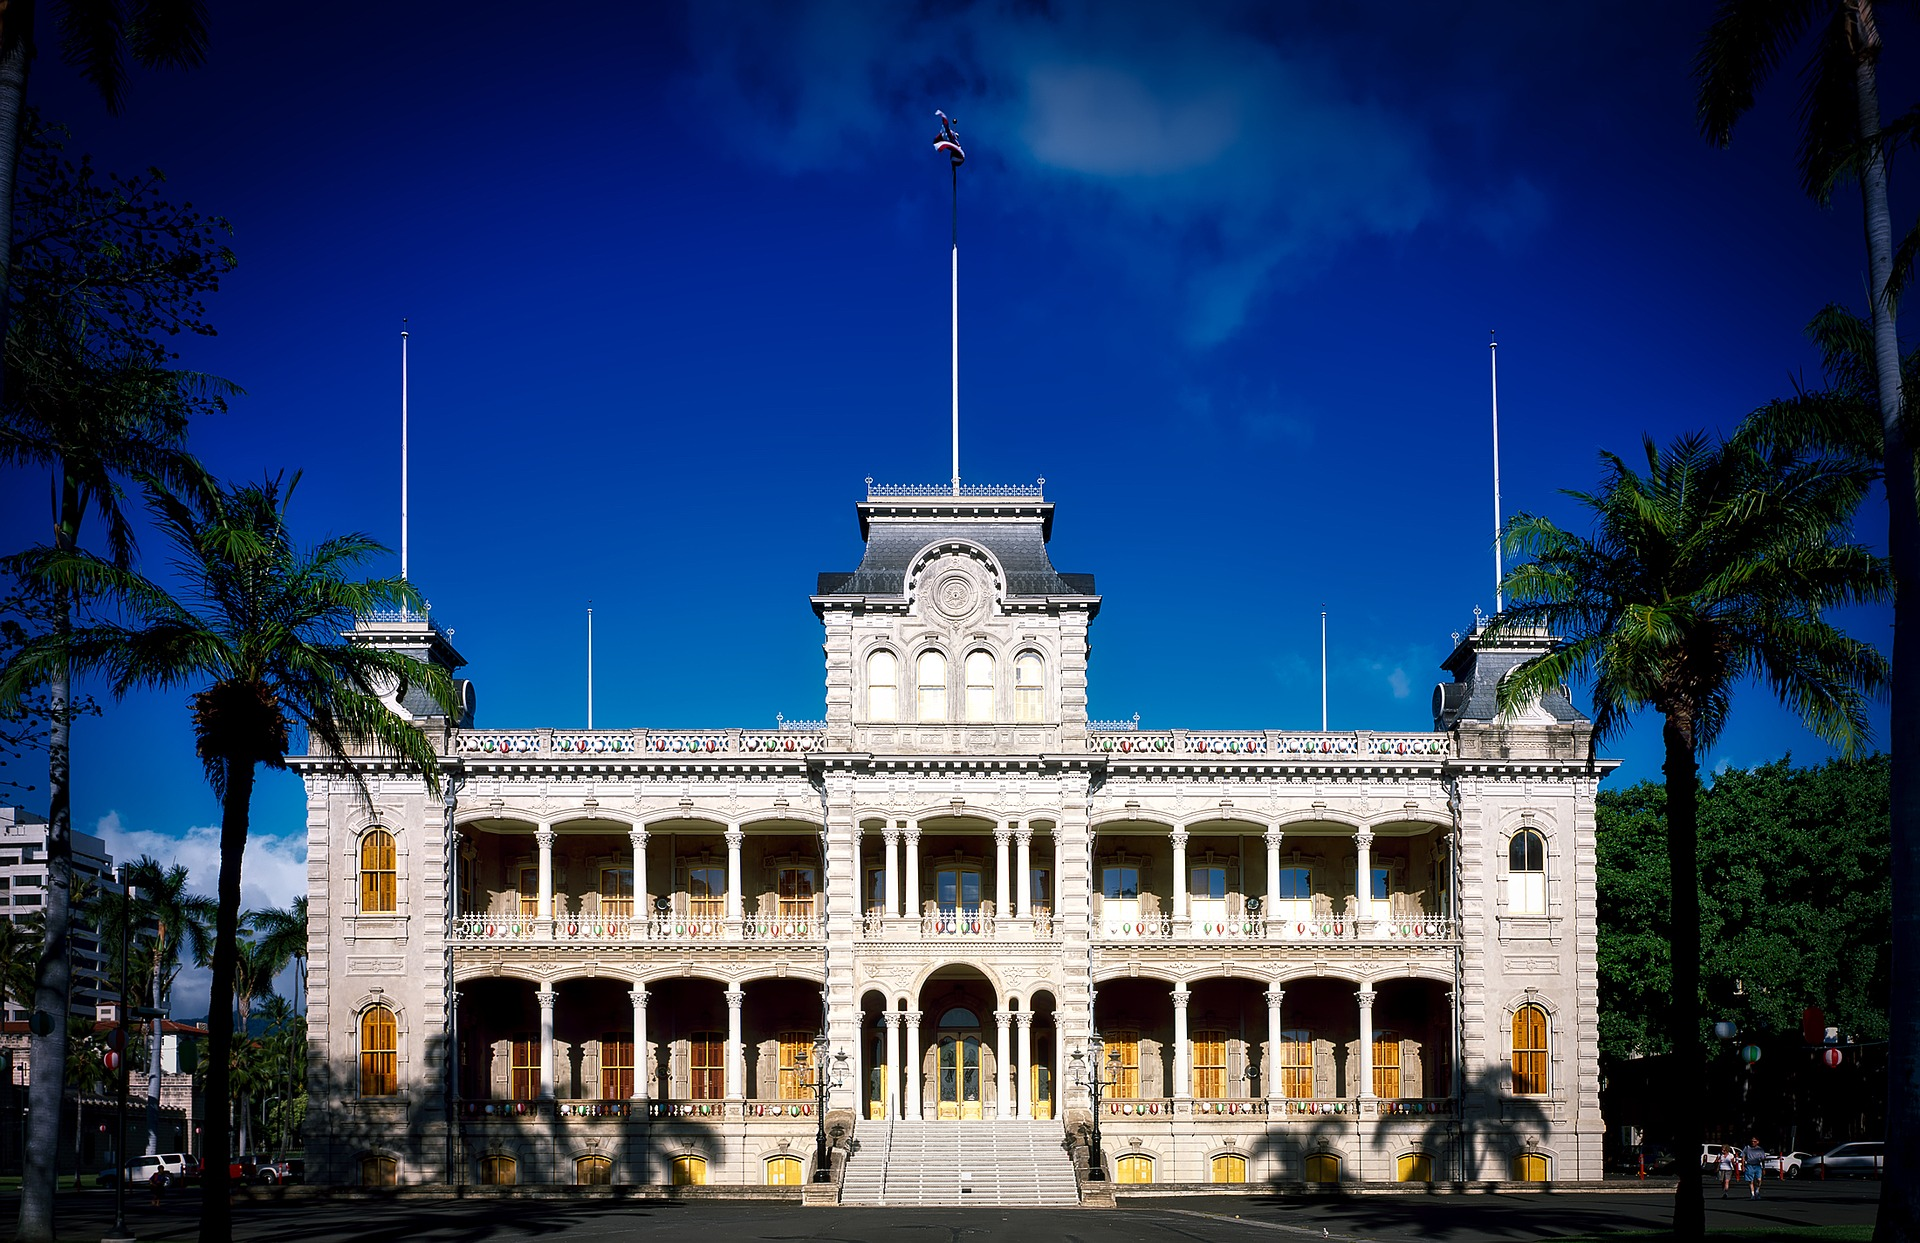 family activities near aulani number 4: iolani palace